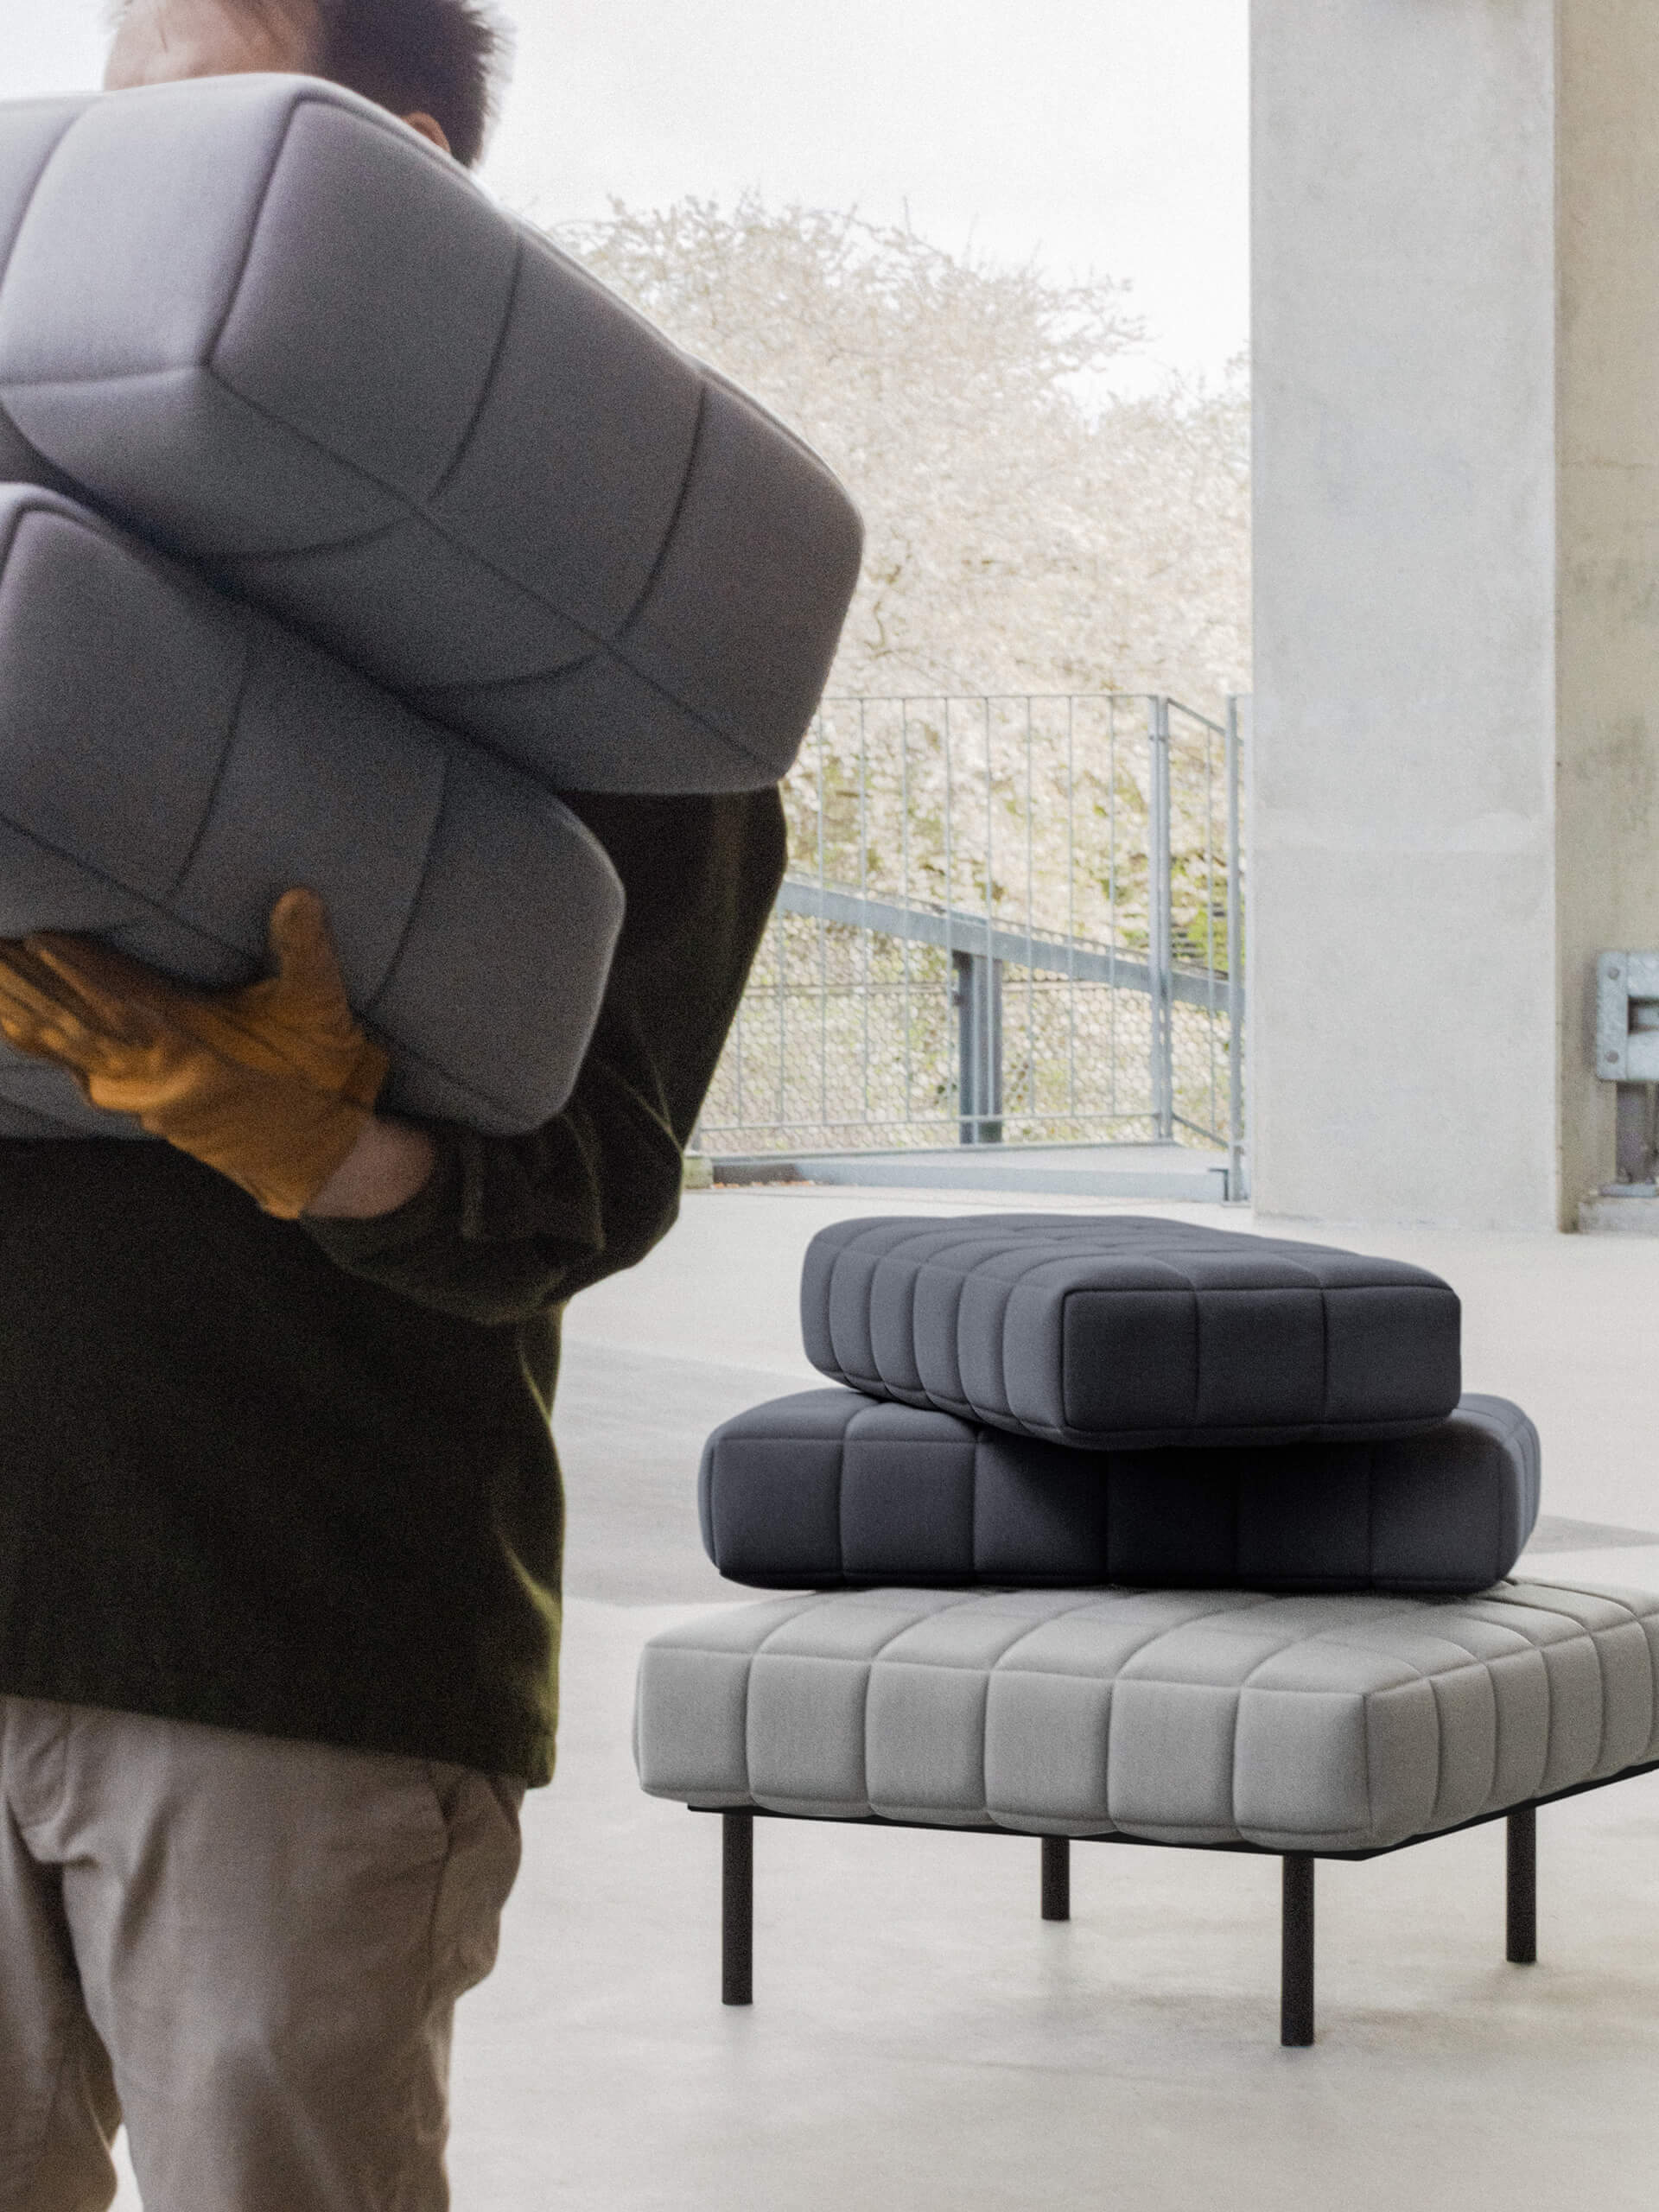 Voxel users can minimise their impact on the environment by exchanging the furniture's components, instead of chucking it out entirely | Voxel Sofa by BIG for Common Seating | STIRworld